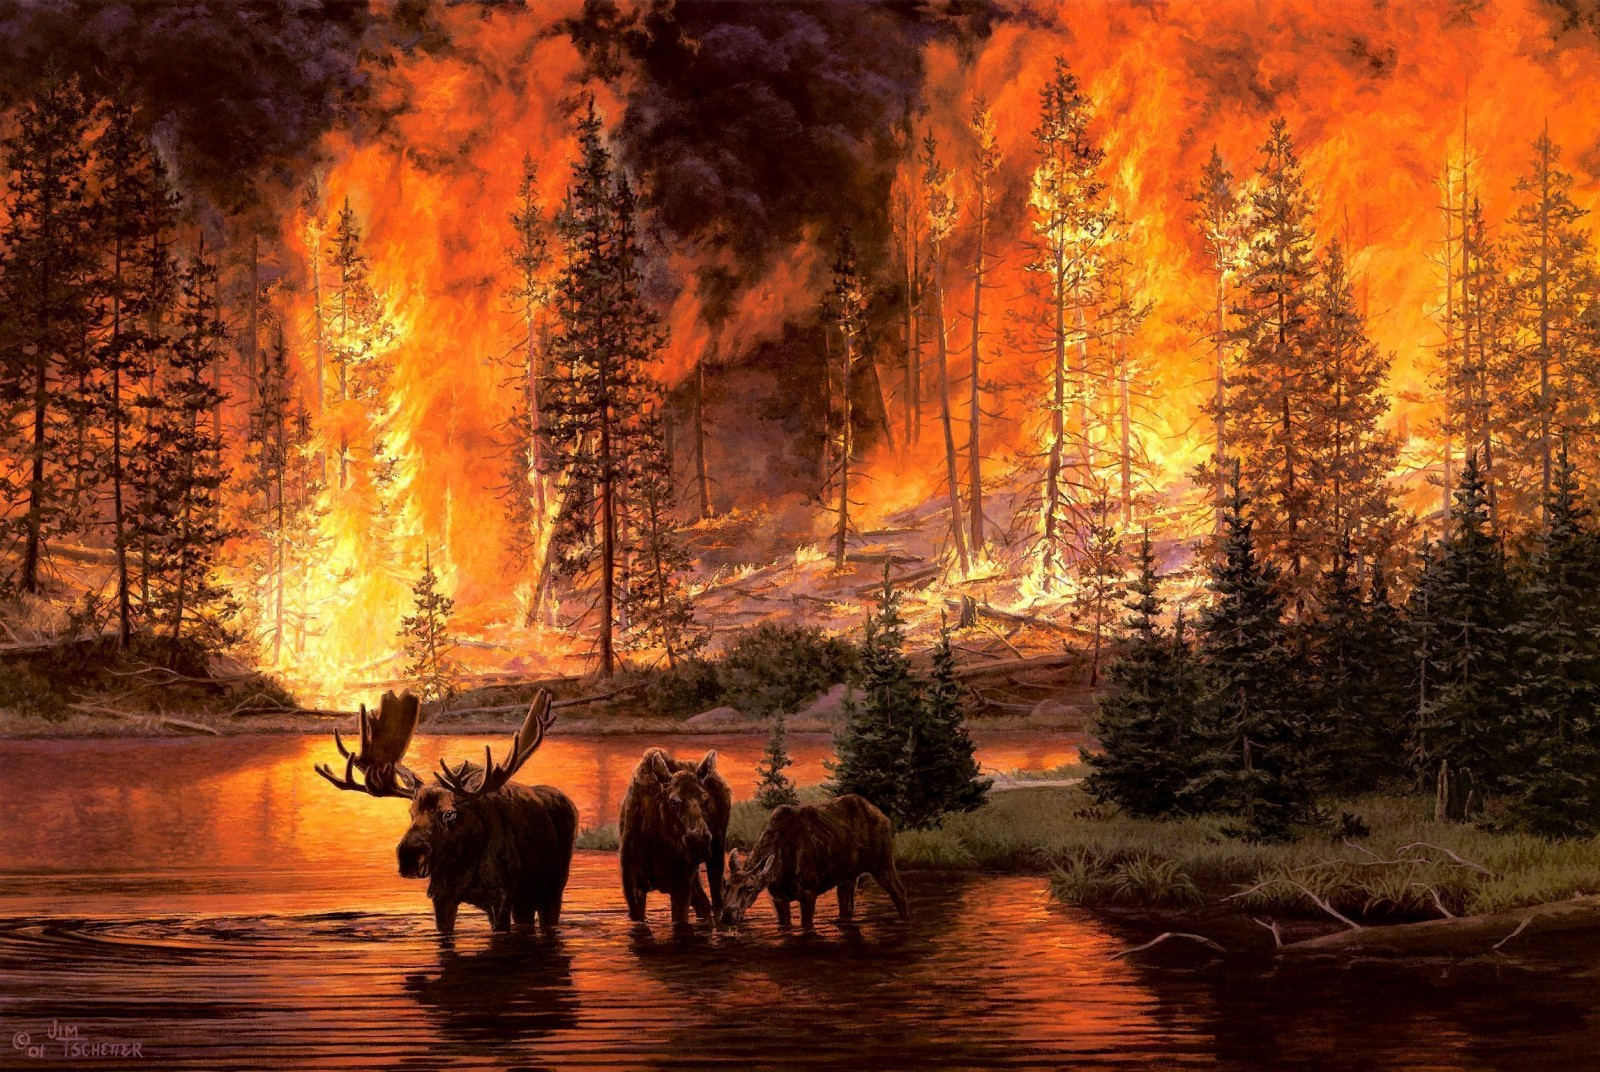 2294x1537_px_animals_art_artistic_fire_flames_forests_Jim-1667999